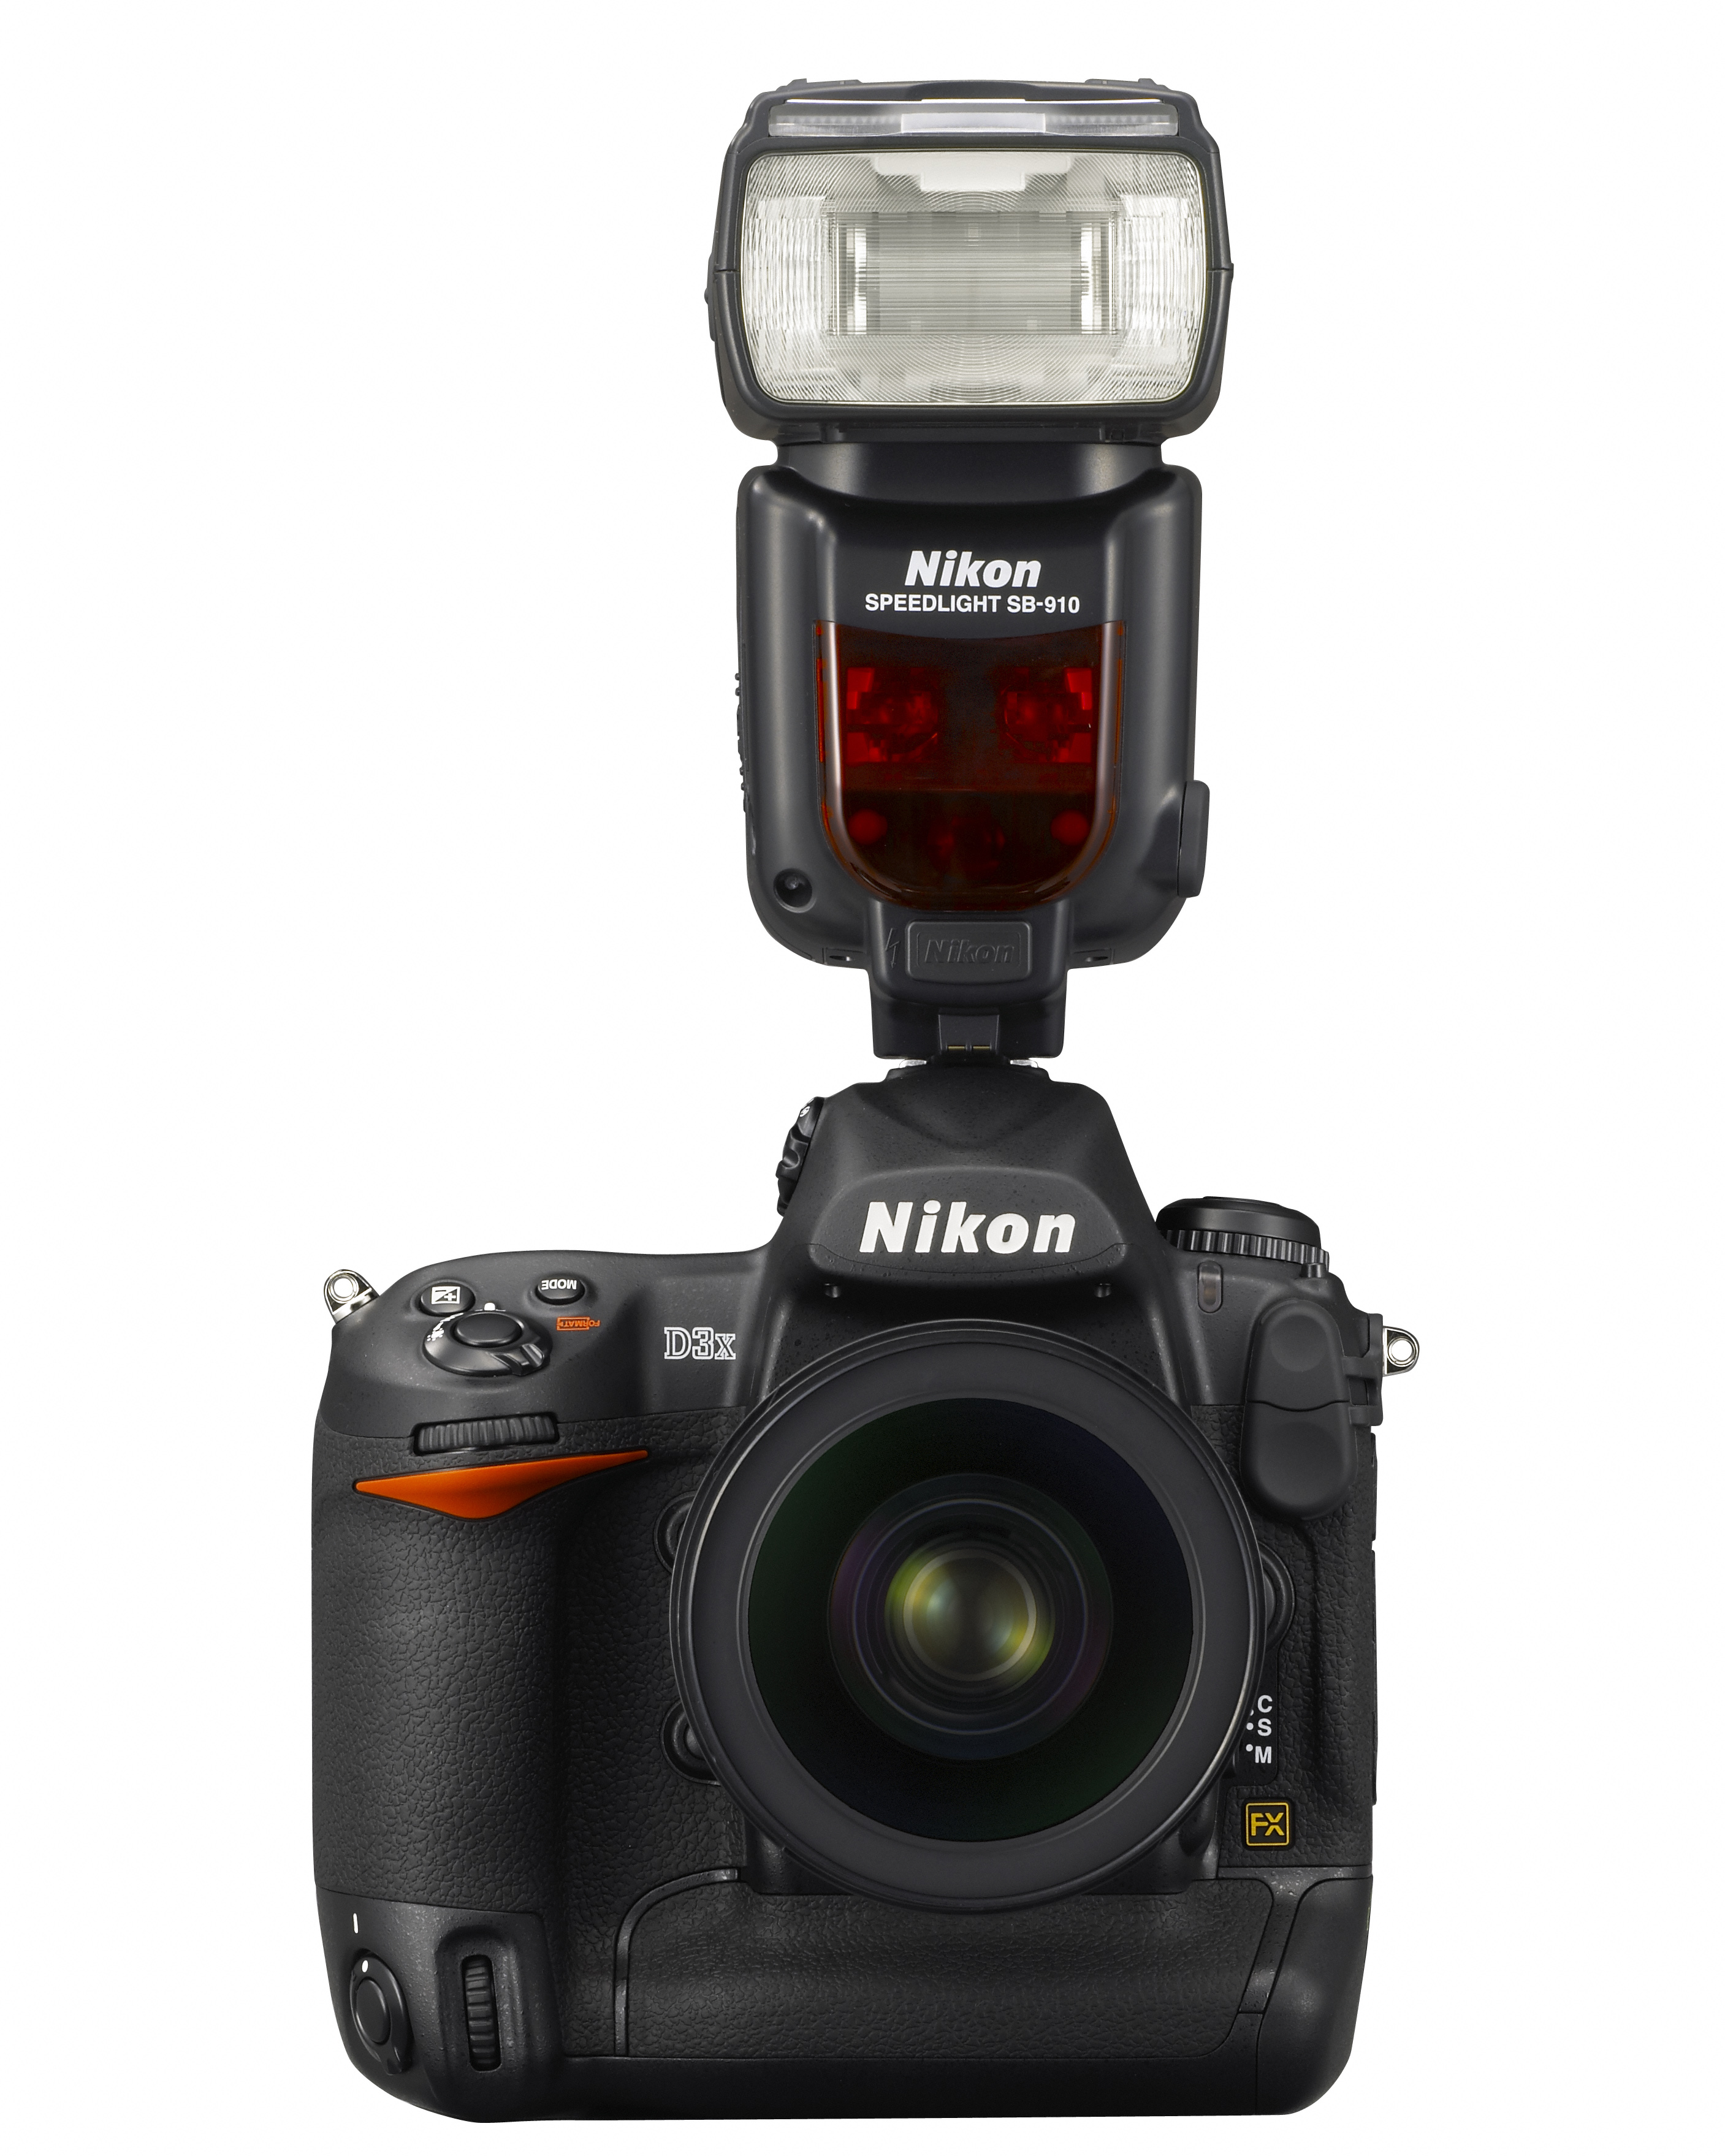 The new nikon sb 910 speedlight harnesses powerful flexibility and download low resolution download high resolution baditri Images